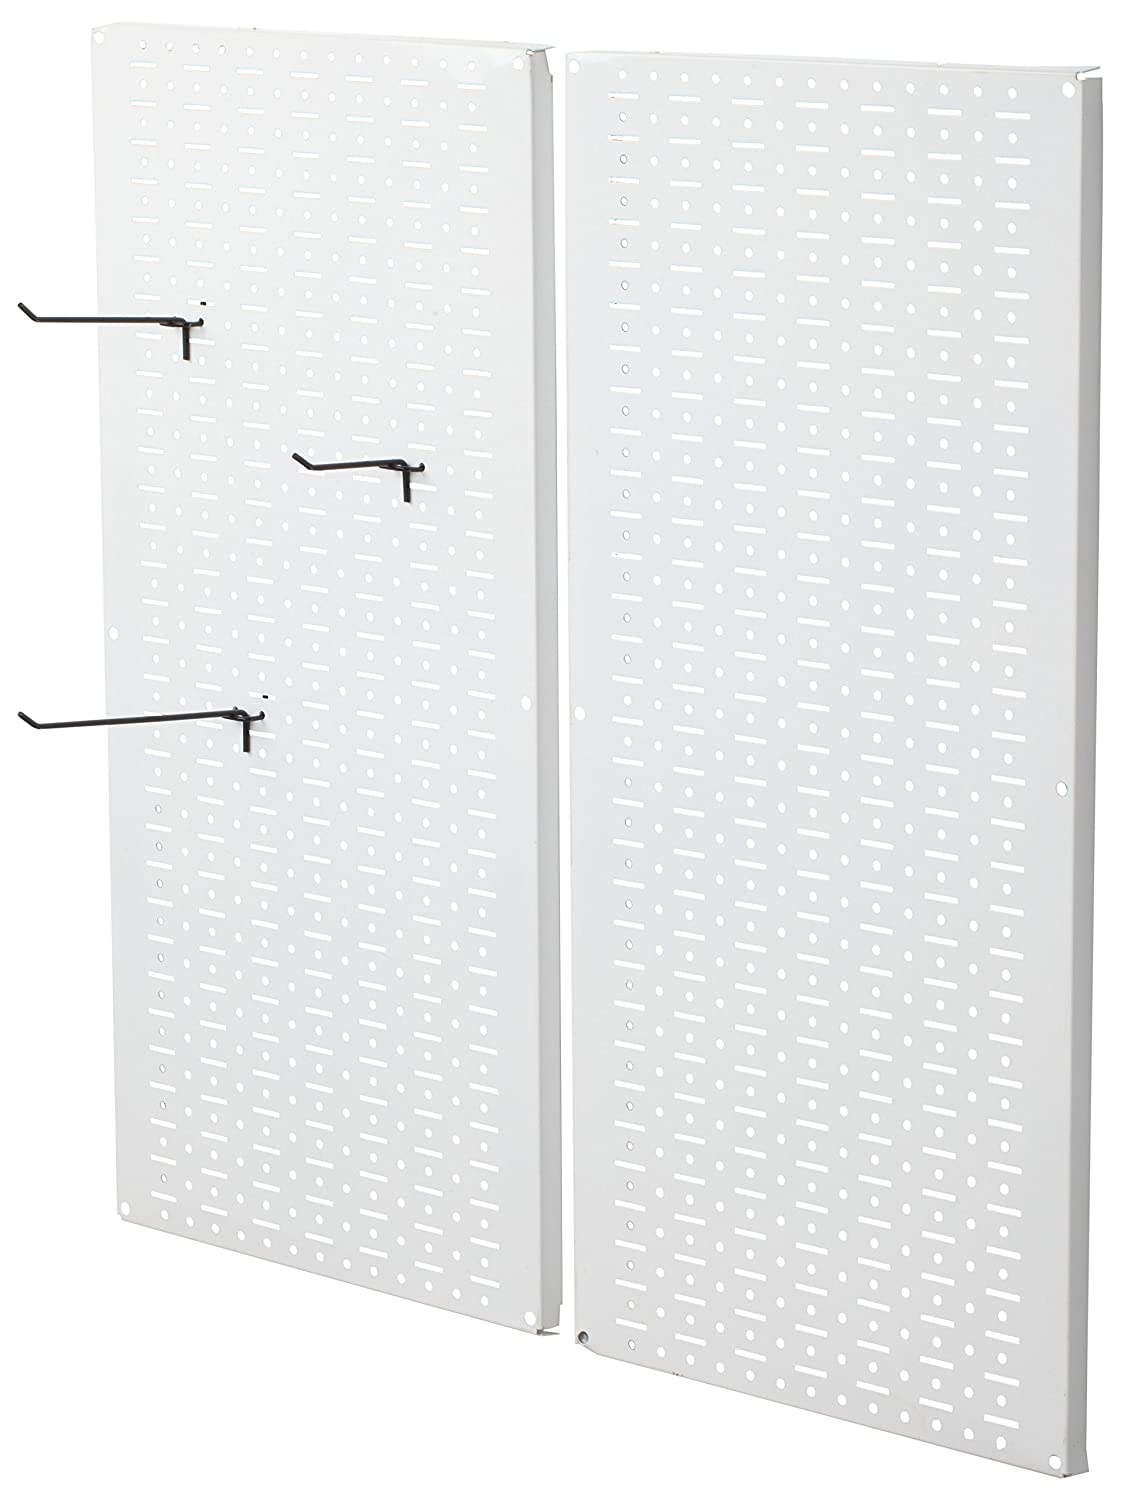 Muscle Rack CPB2-WT Steel Pegboard 2 Pack, White, 32